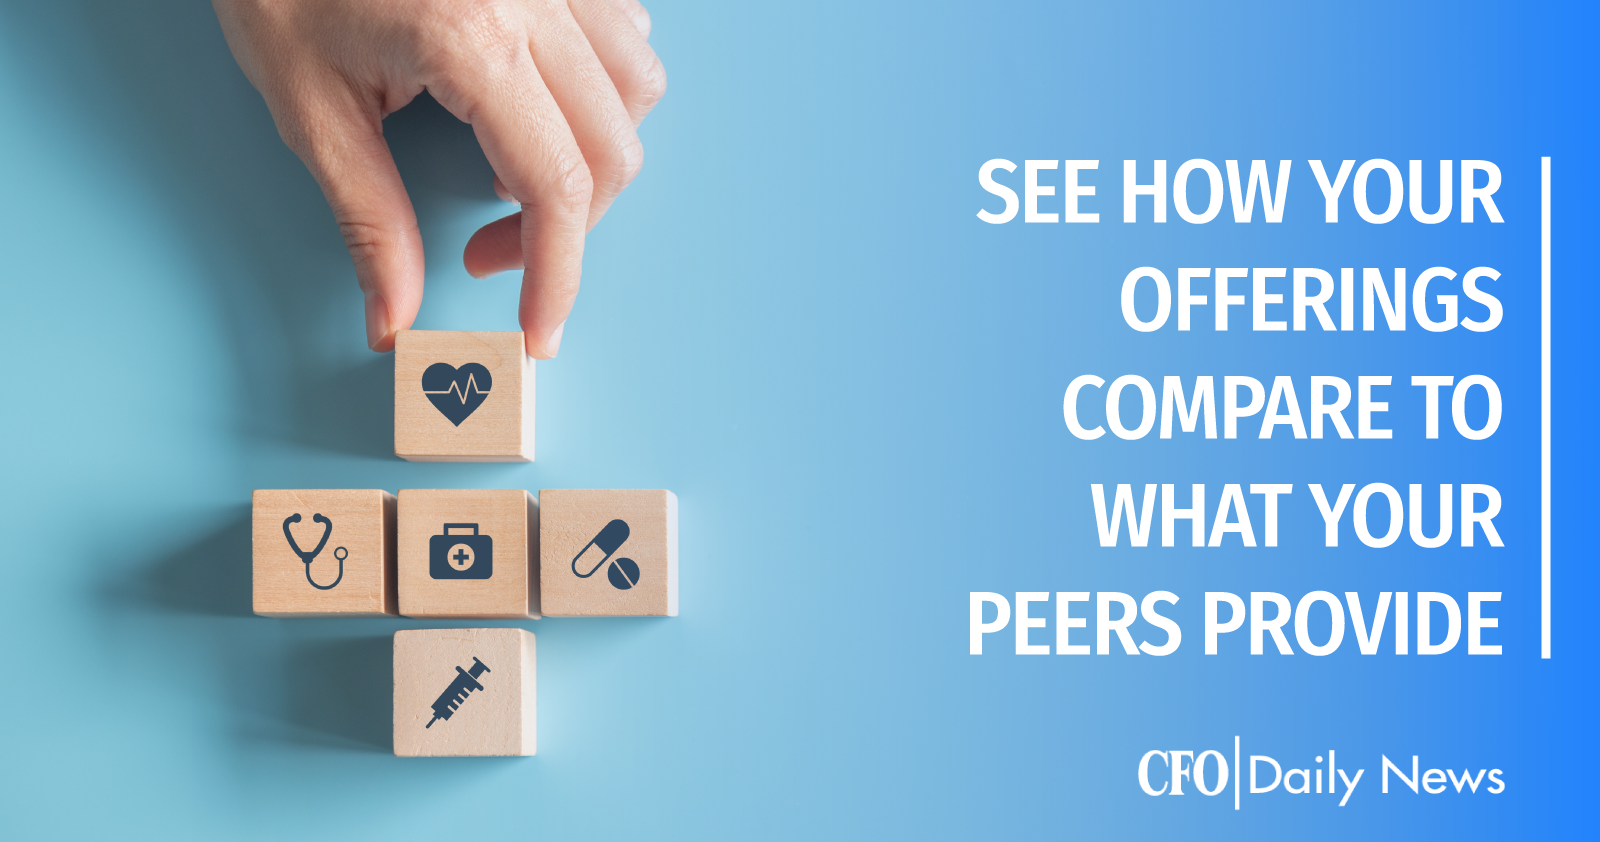 see how your offerings compare to what your peers provide